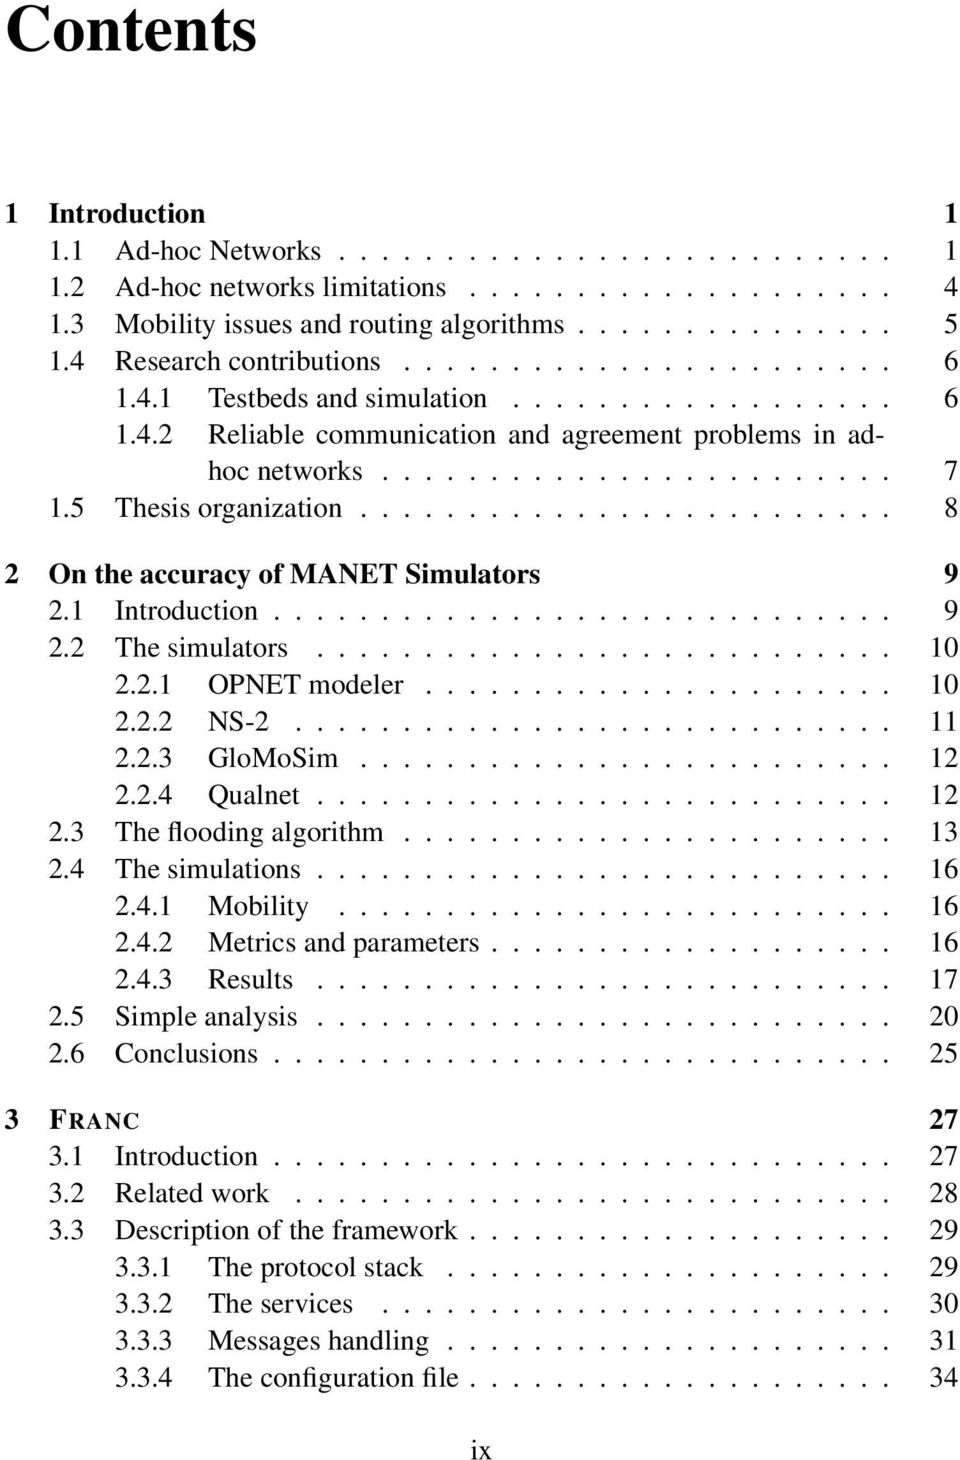 5 Thesis organization......................... 8 2 On the accuracy of MANET Simulators 9 2.1 Introduction............................. 9 2.2 The simulators........................... 10 2.2.1 OPNET modeler.